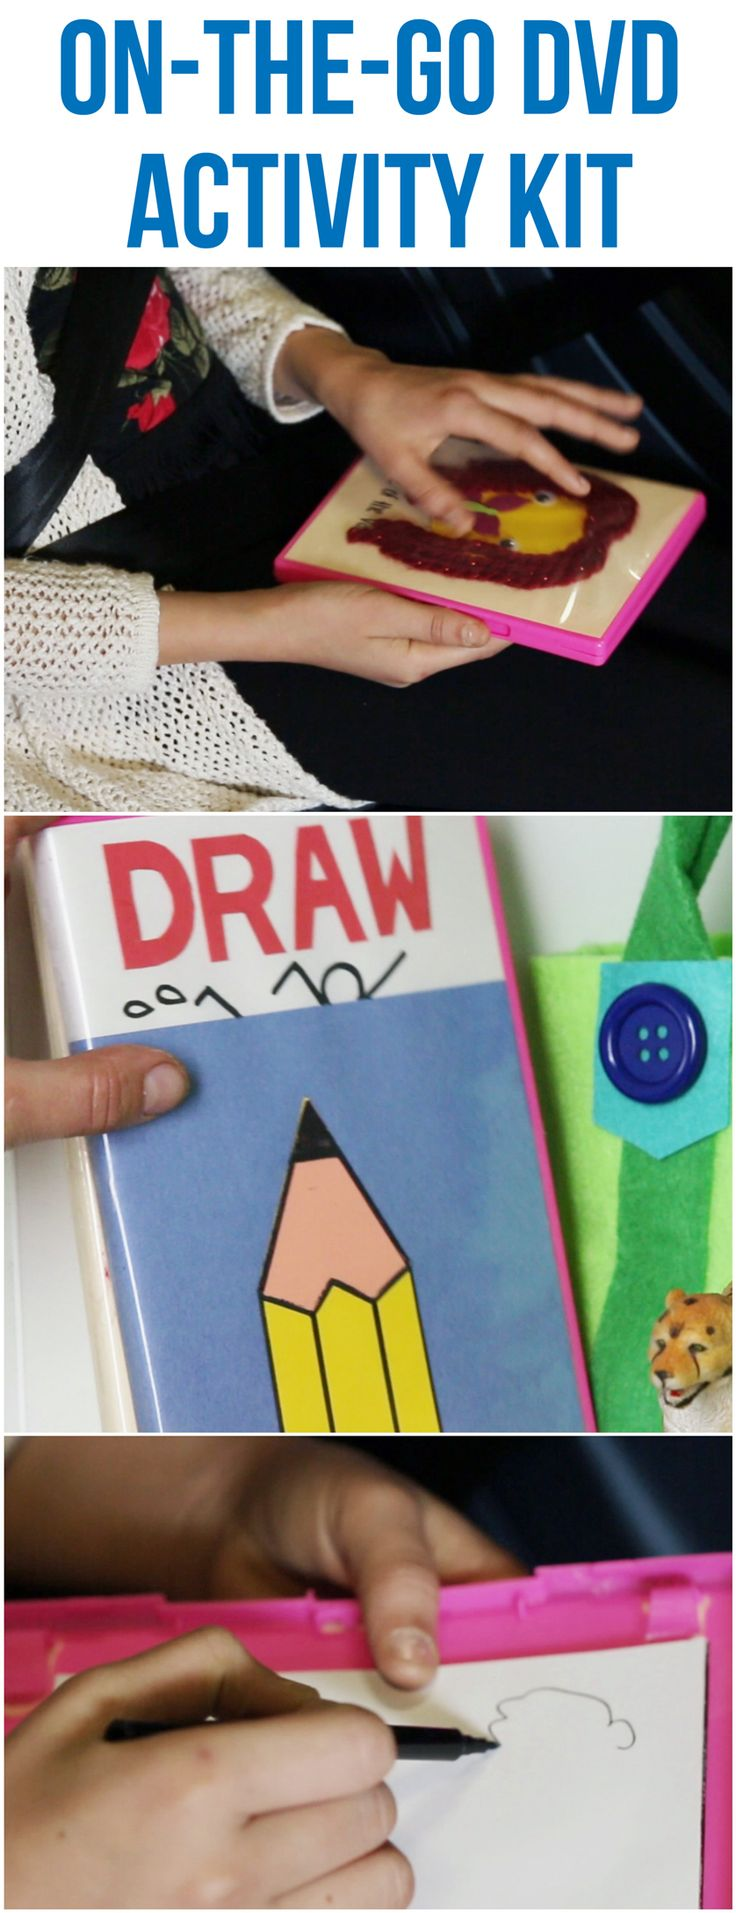 Transform an old DVD case into a drawing kit for kids